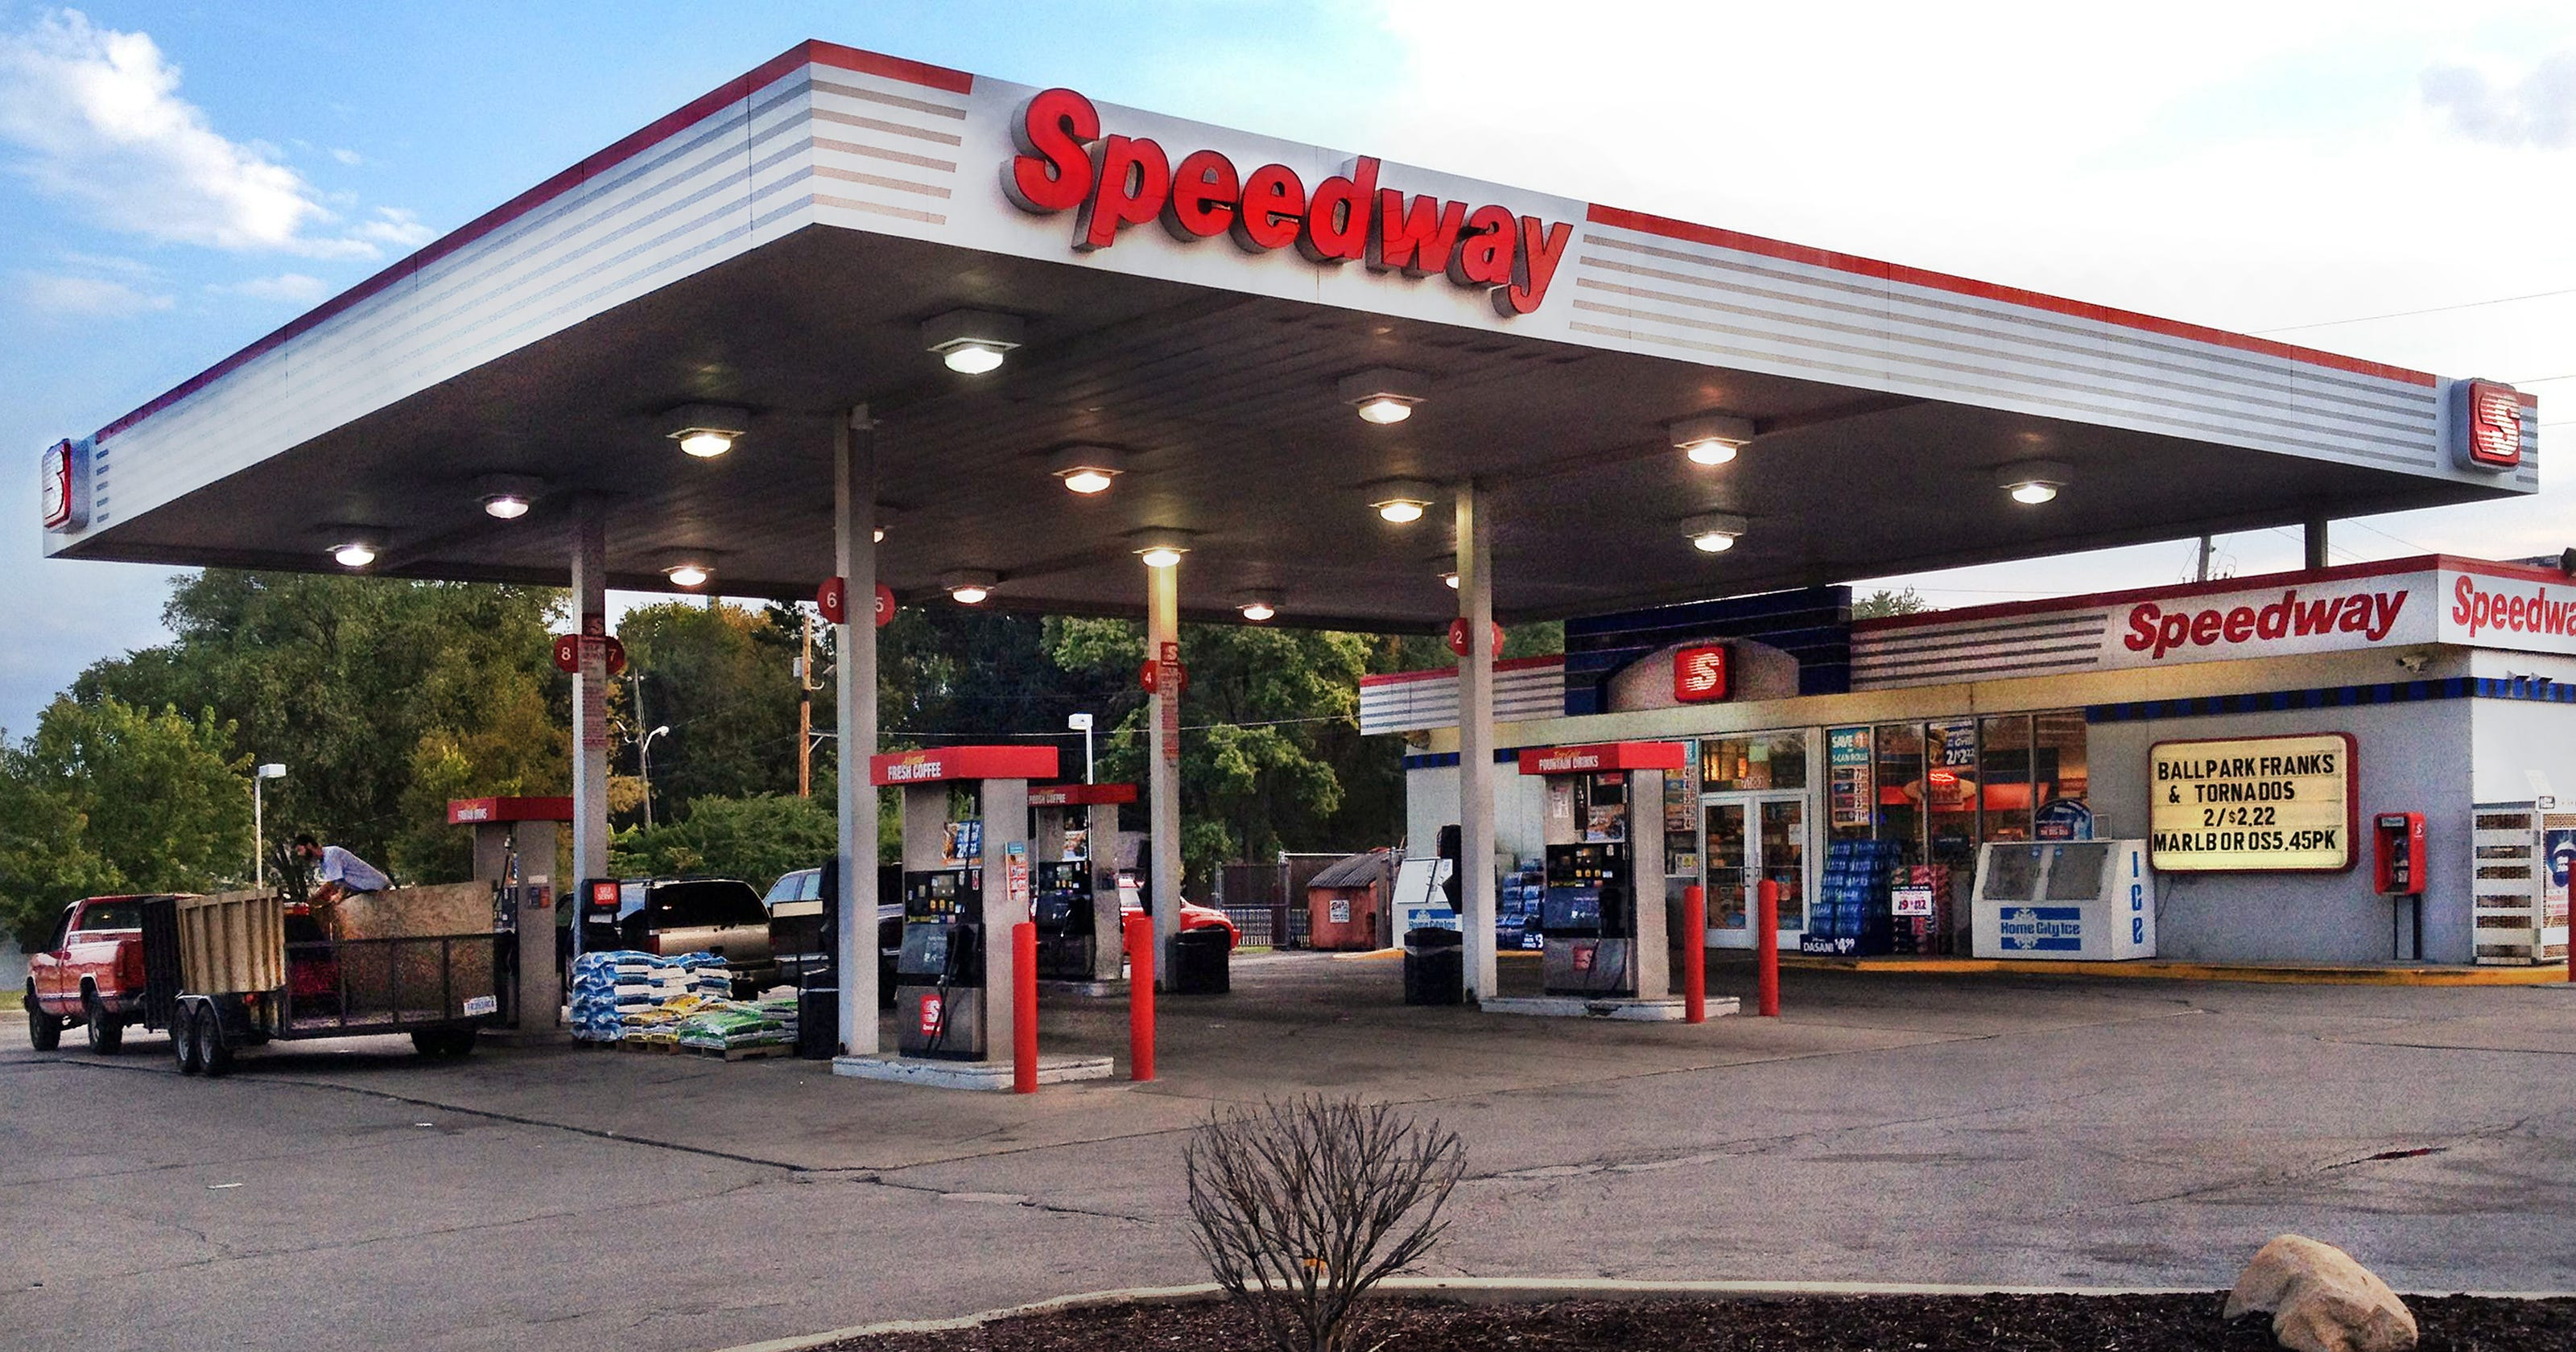 Near Gas Station >> Halt Gas Stations Near Neighborhoods Indy Planners Say